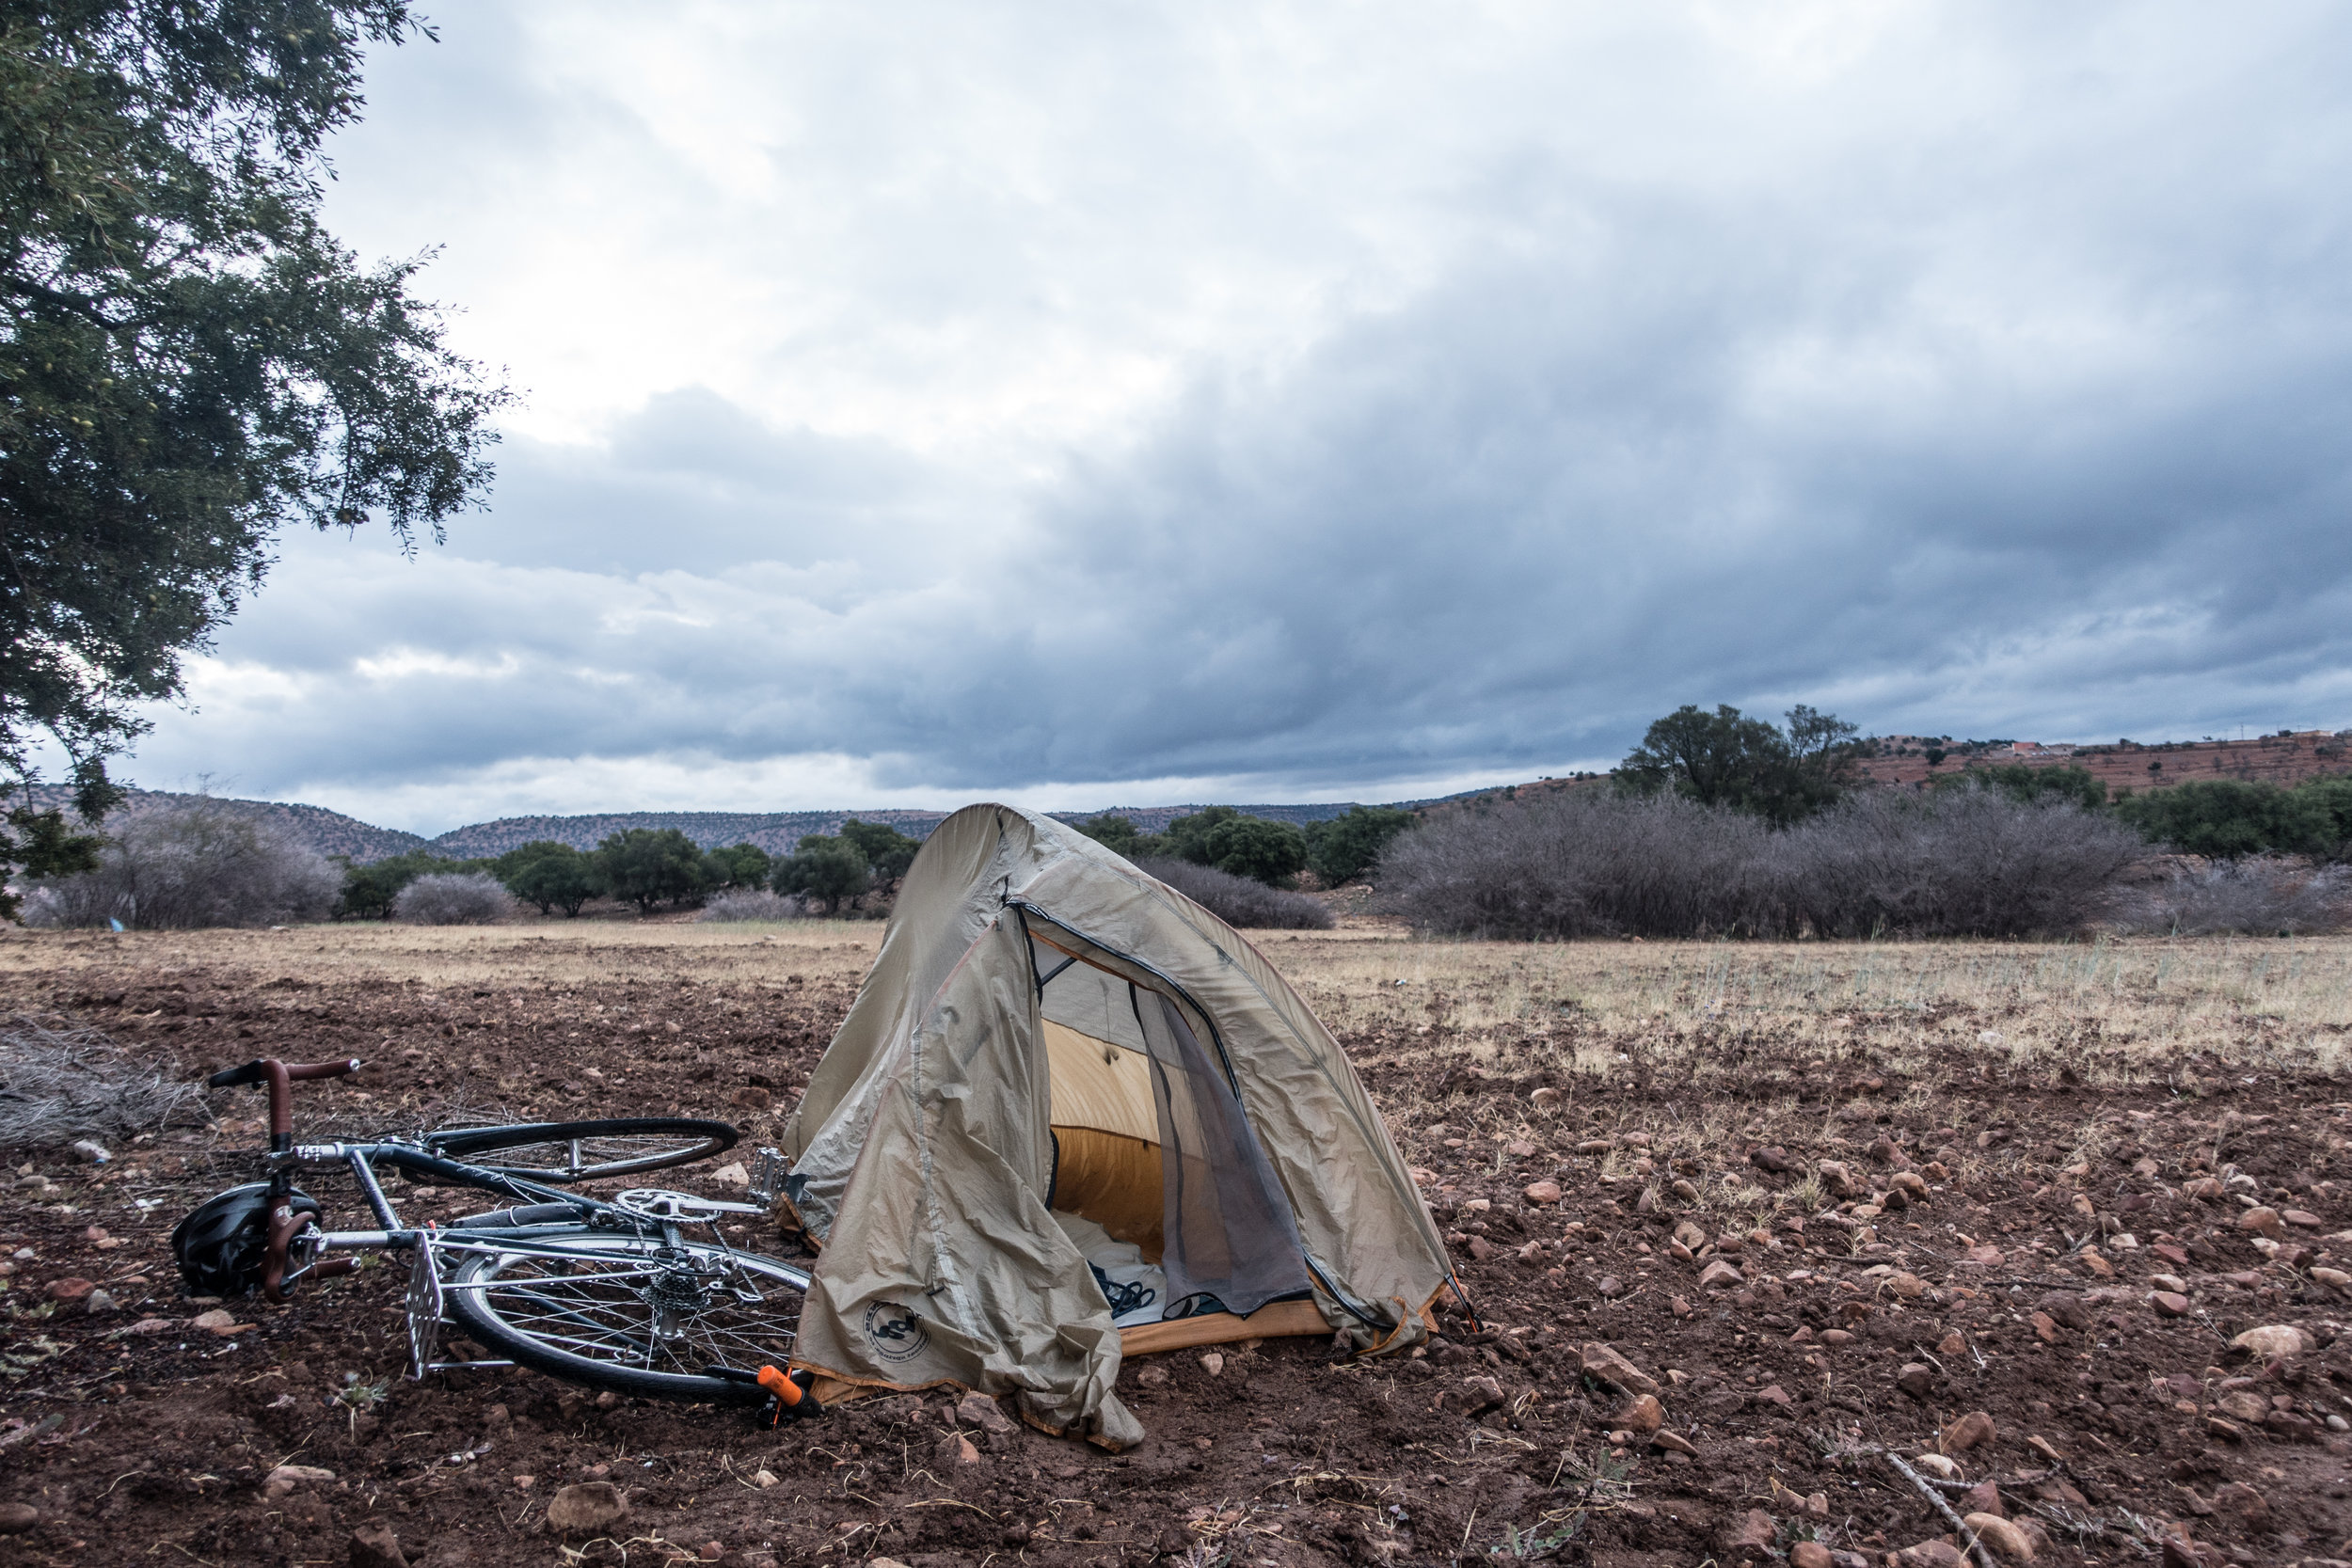 Another night spent rough camping in a cold, wet, bumpy field in Morocco. With discomfort, perspective is everything, but sometimes (especially when cold, wet, and tired) it can be easy to lose perspective.